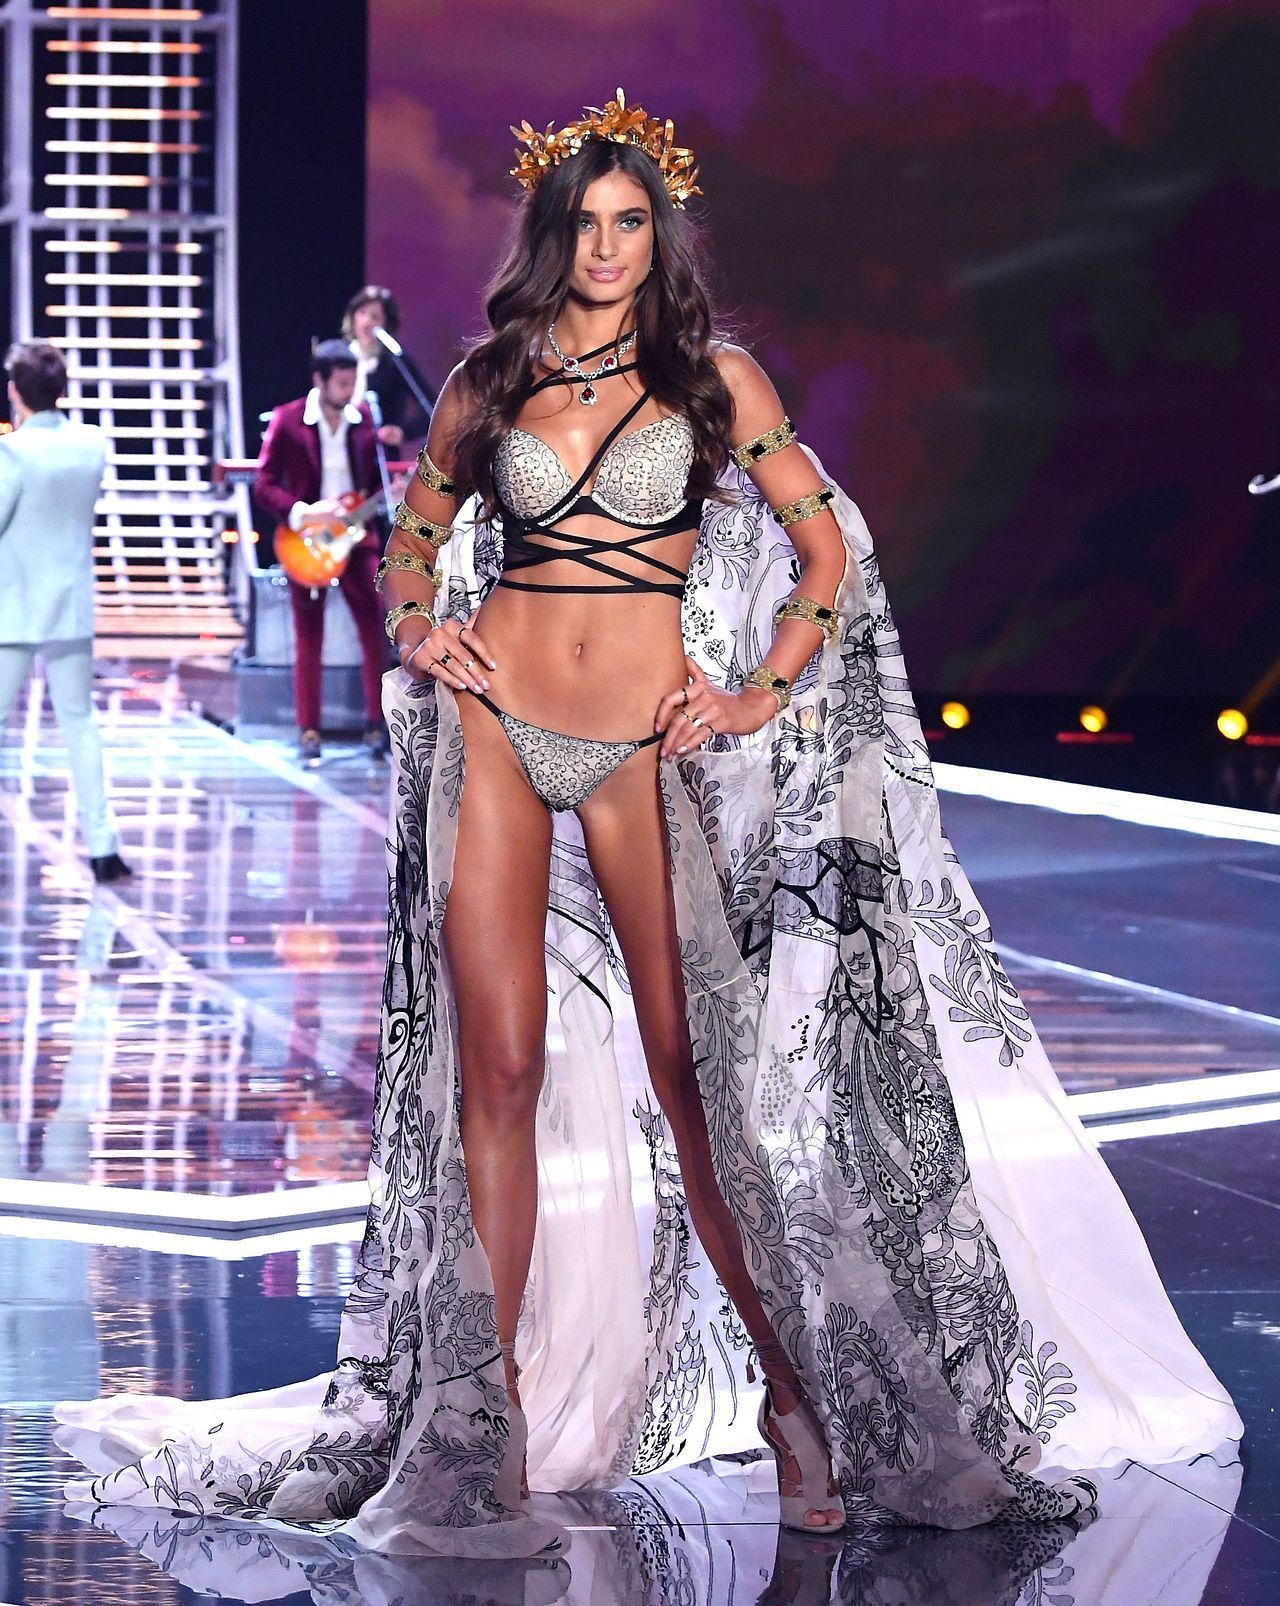 e8ed42ce0b9 Taylor Hill walks the runway at the 2017 Victoria's Secret Fashion Show in  Shanghai on November 20, 2017.